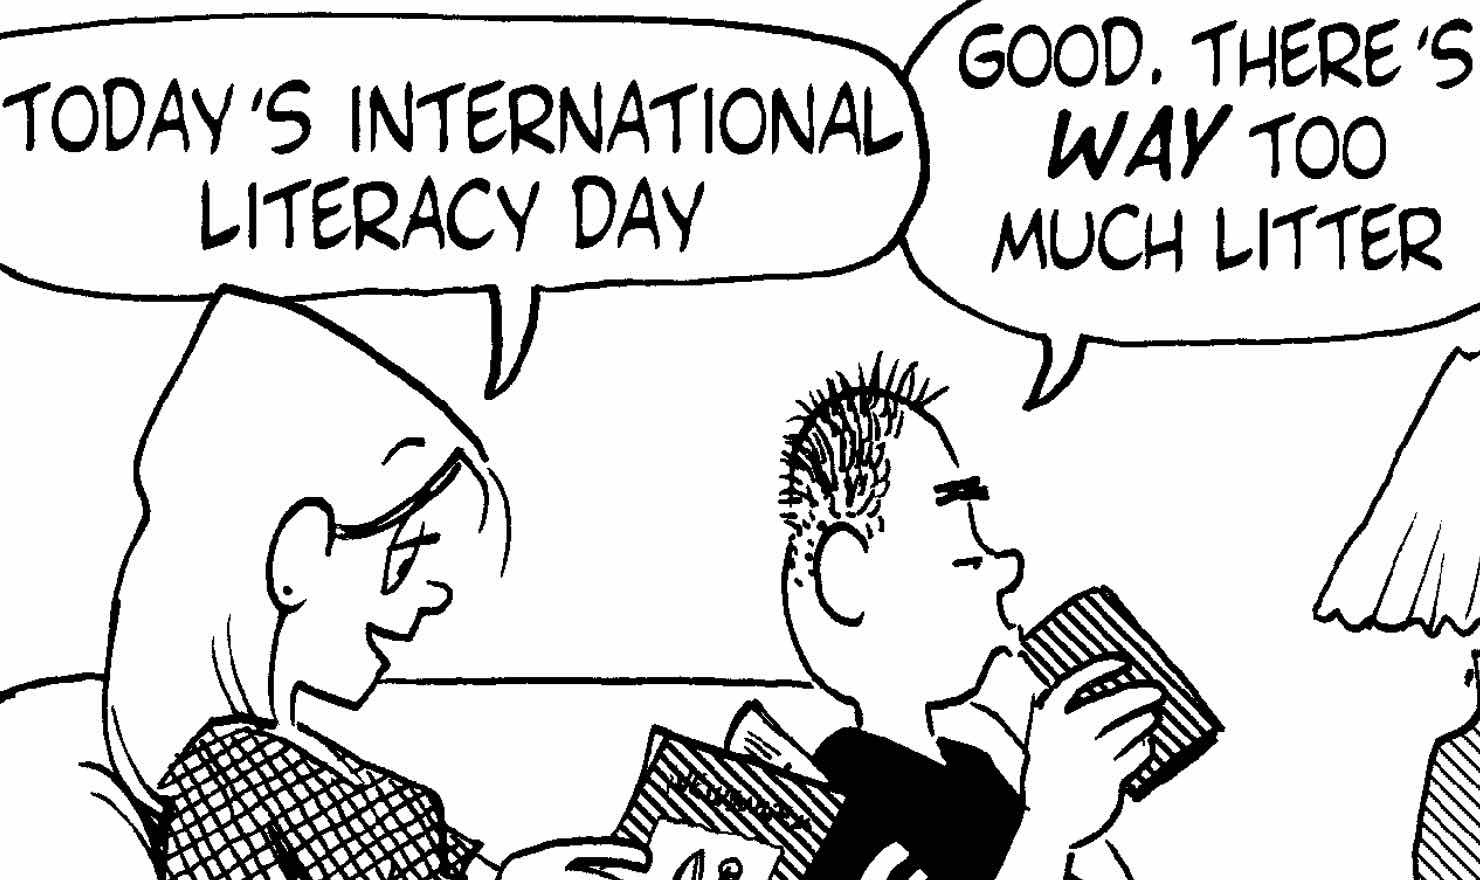 It's Lit: 10 Readable Comics For International Literacy Day